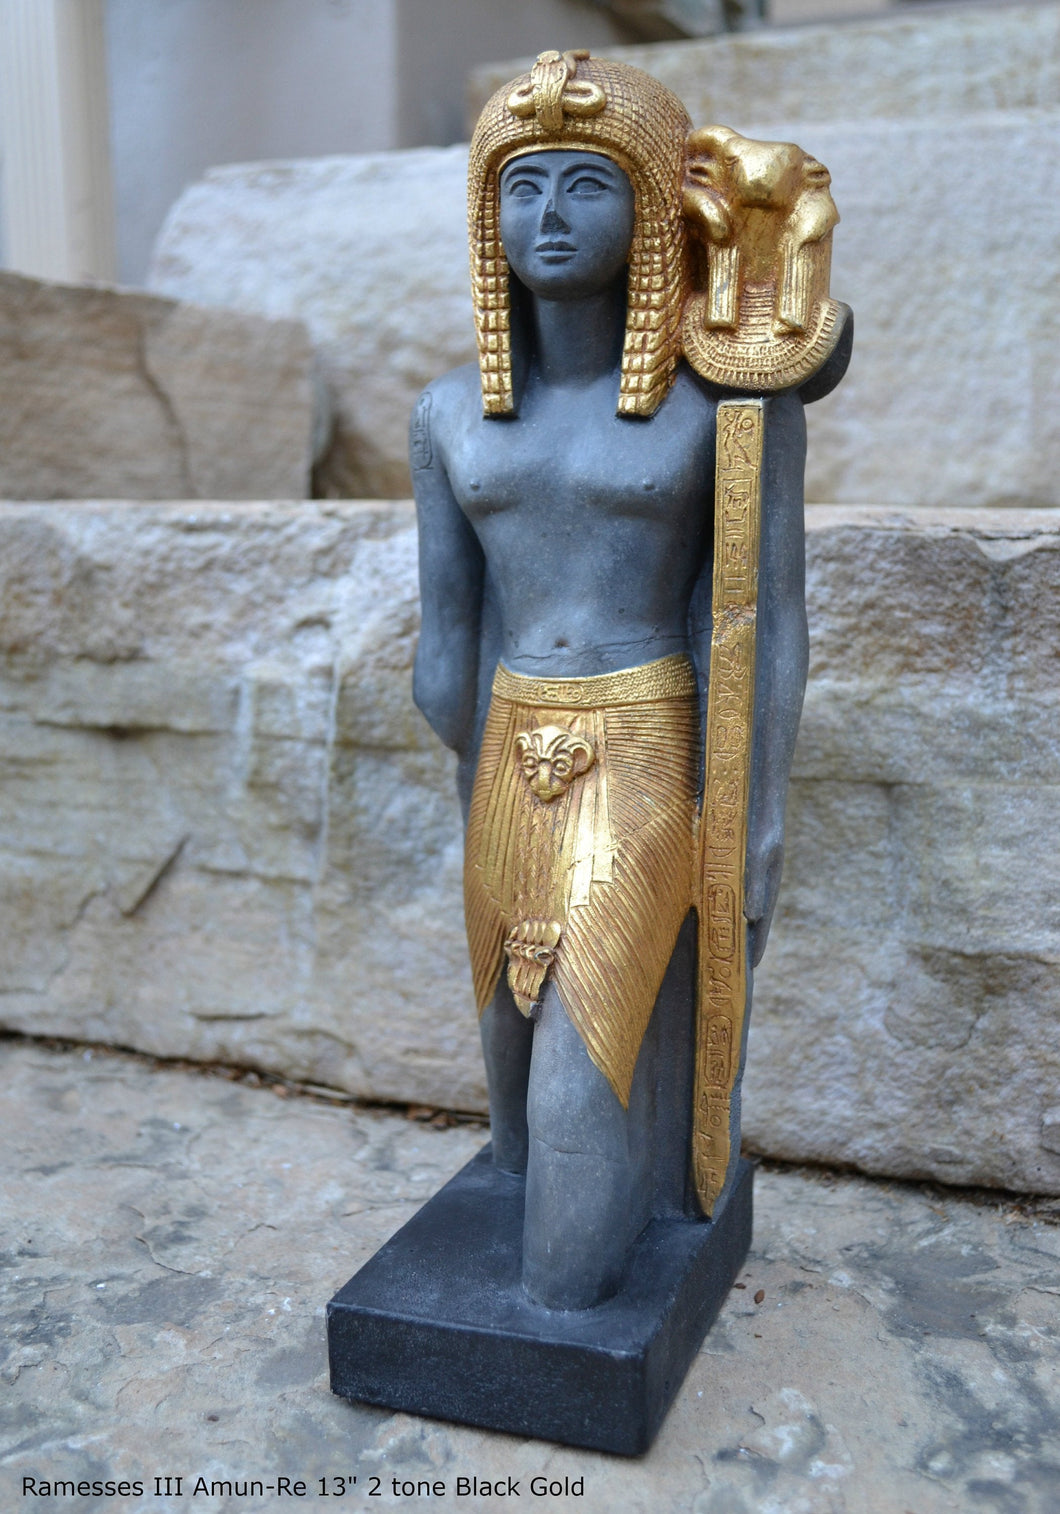 "History Egyptian Ramesses Ramses III Standard-Bearer of Amun-Re Sculpture Statue 13"" www.Neo-Mfg.com Museum Replica Grand size"